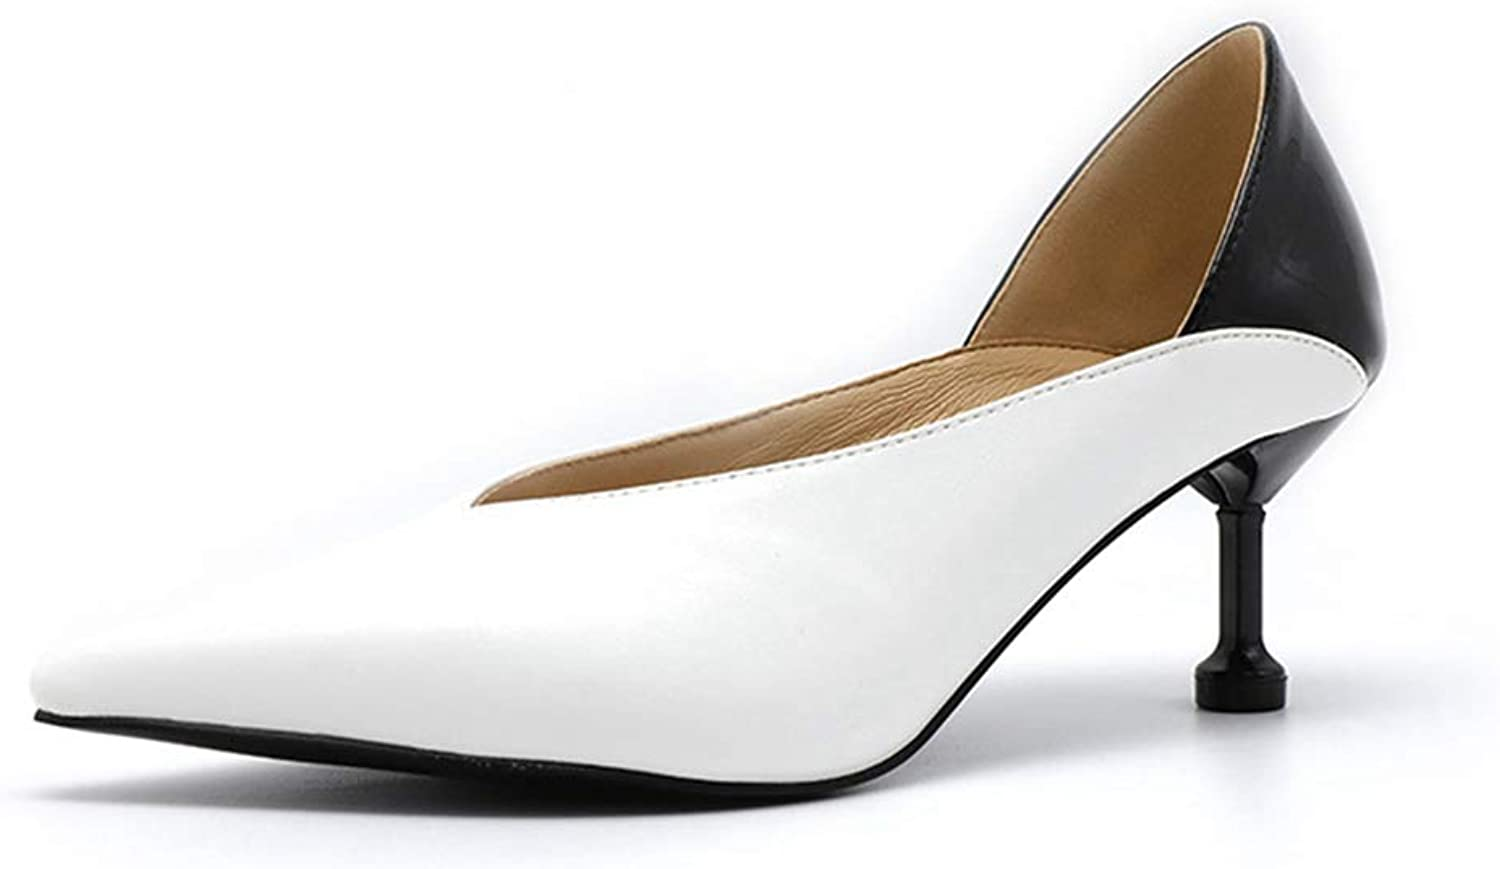 Sam Carle Women Pumps, Mixture color Kitten Heel Closed Pointed Toe Sexy Spring Wedding Party shoes